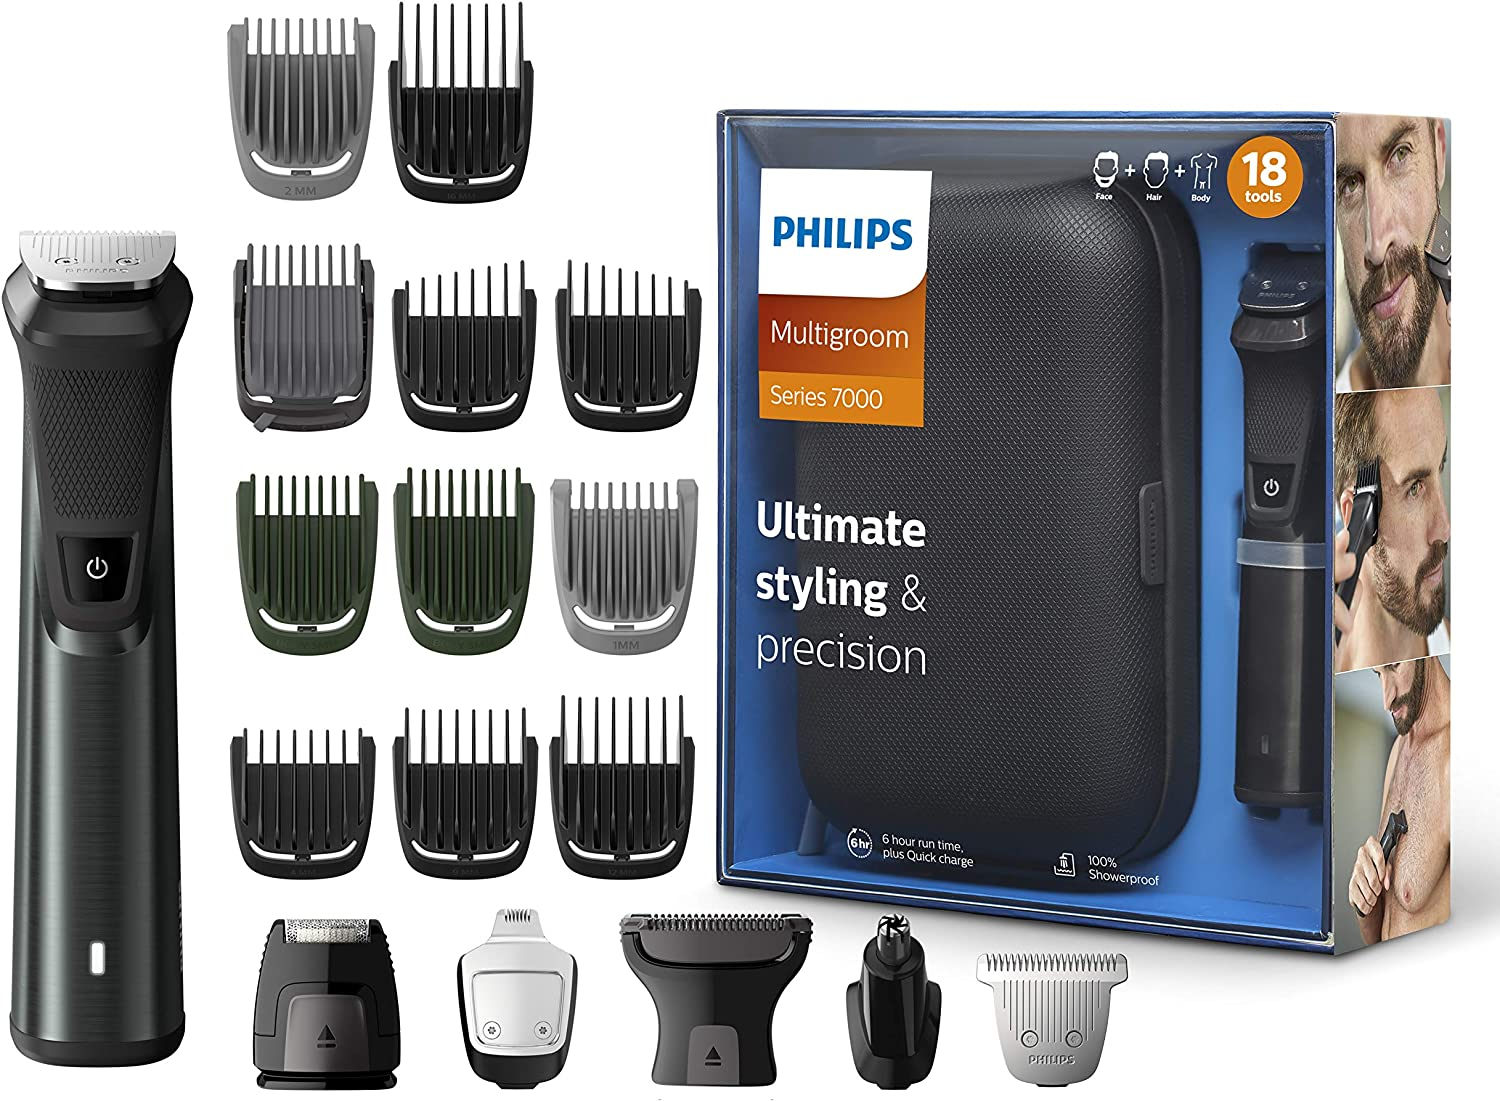 Philips mg7785/20 Multigroom Series 7000 18 en 1 – Recortador para ...